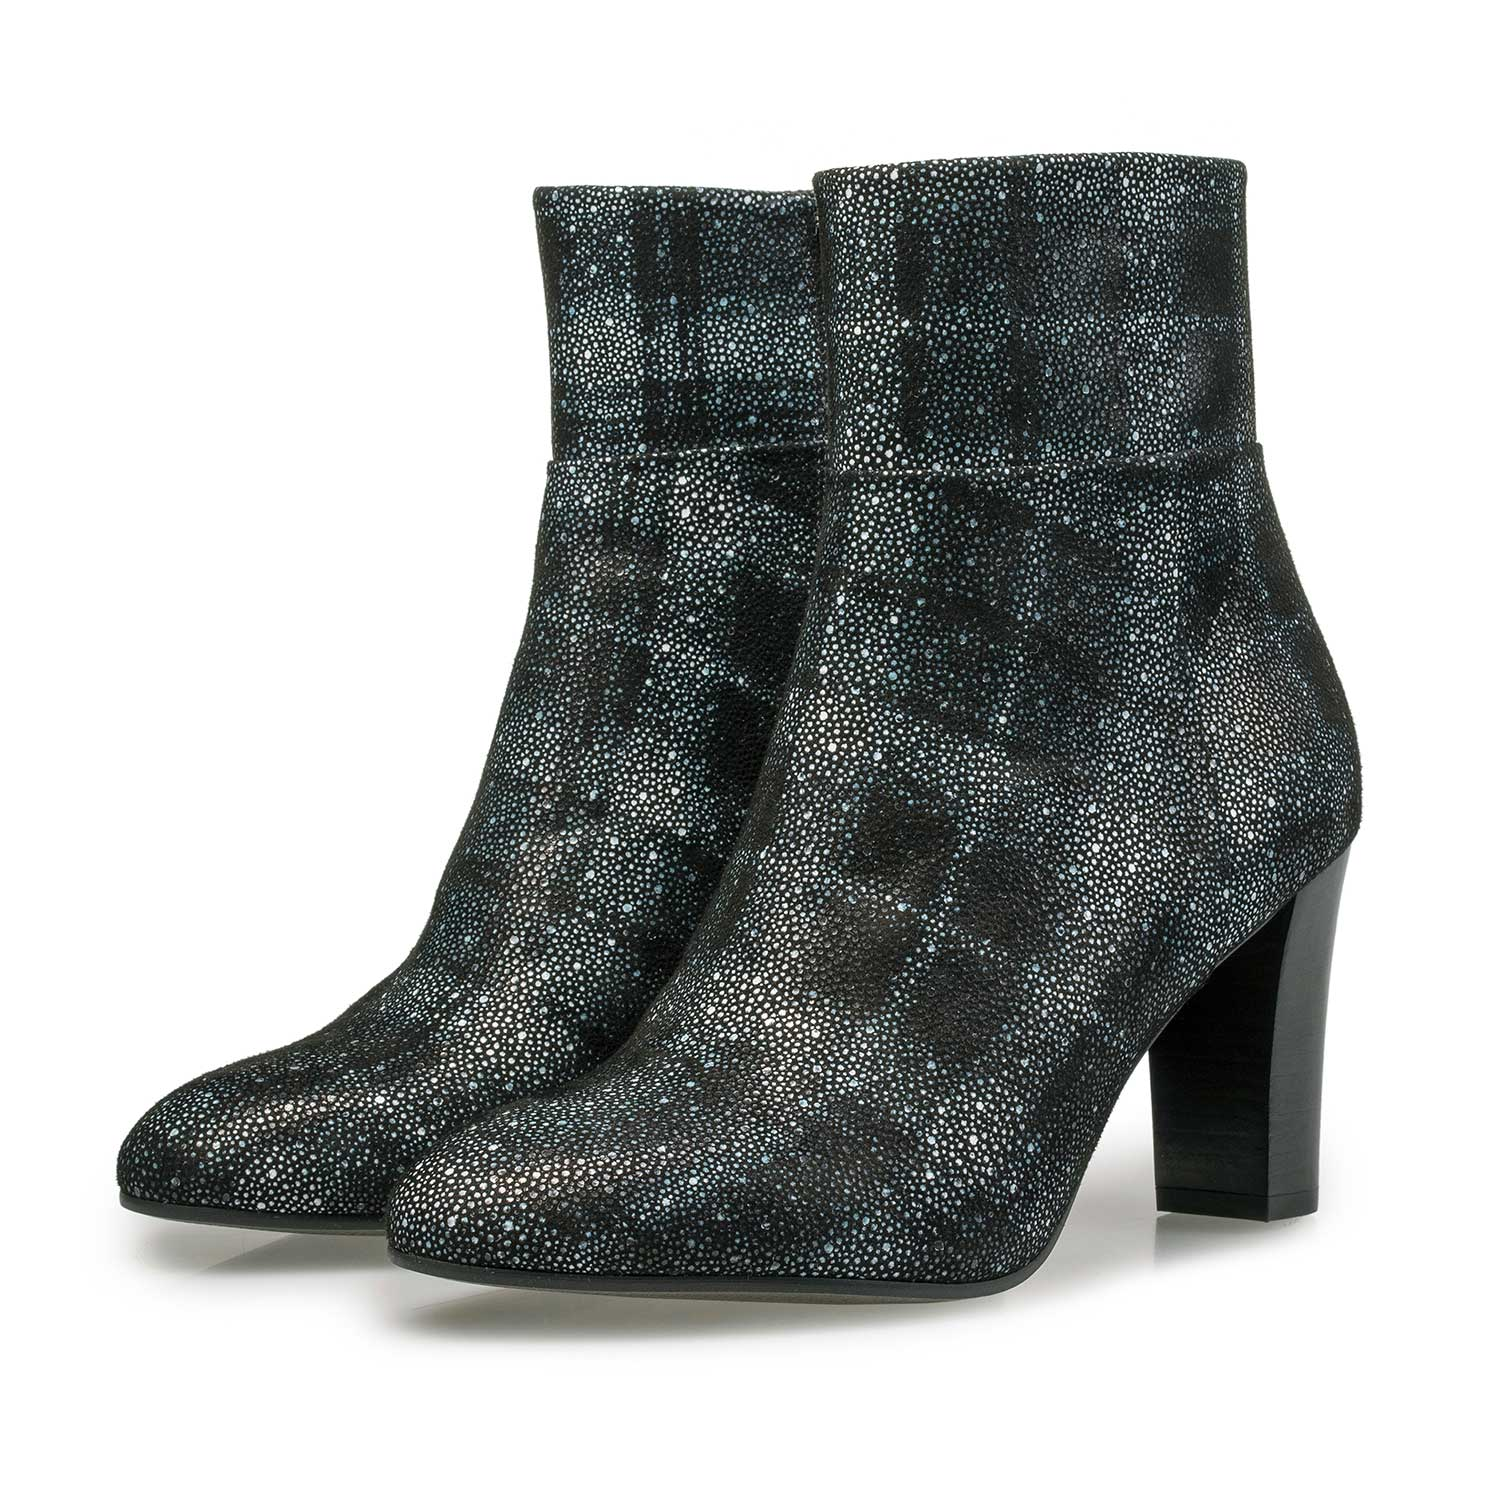 85196/06 - Ankle boot with black-blue check pattern